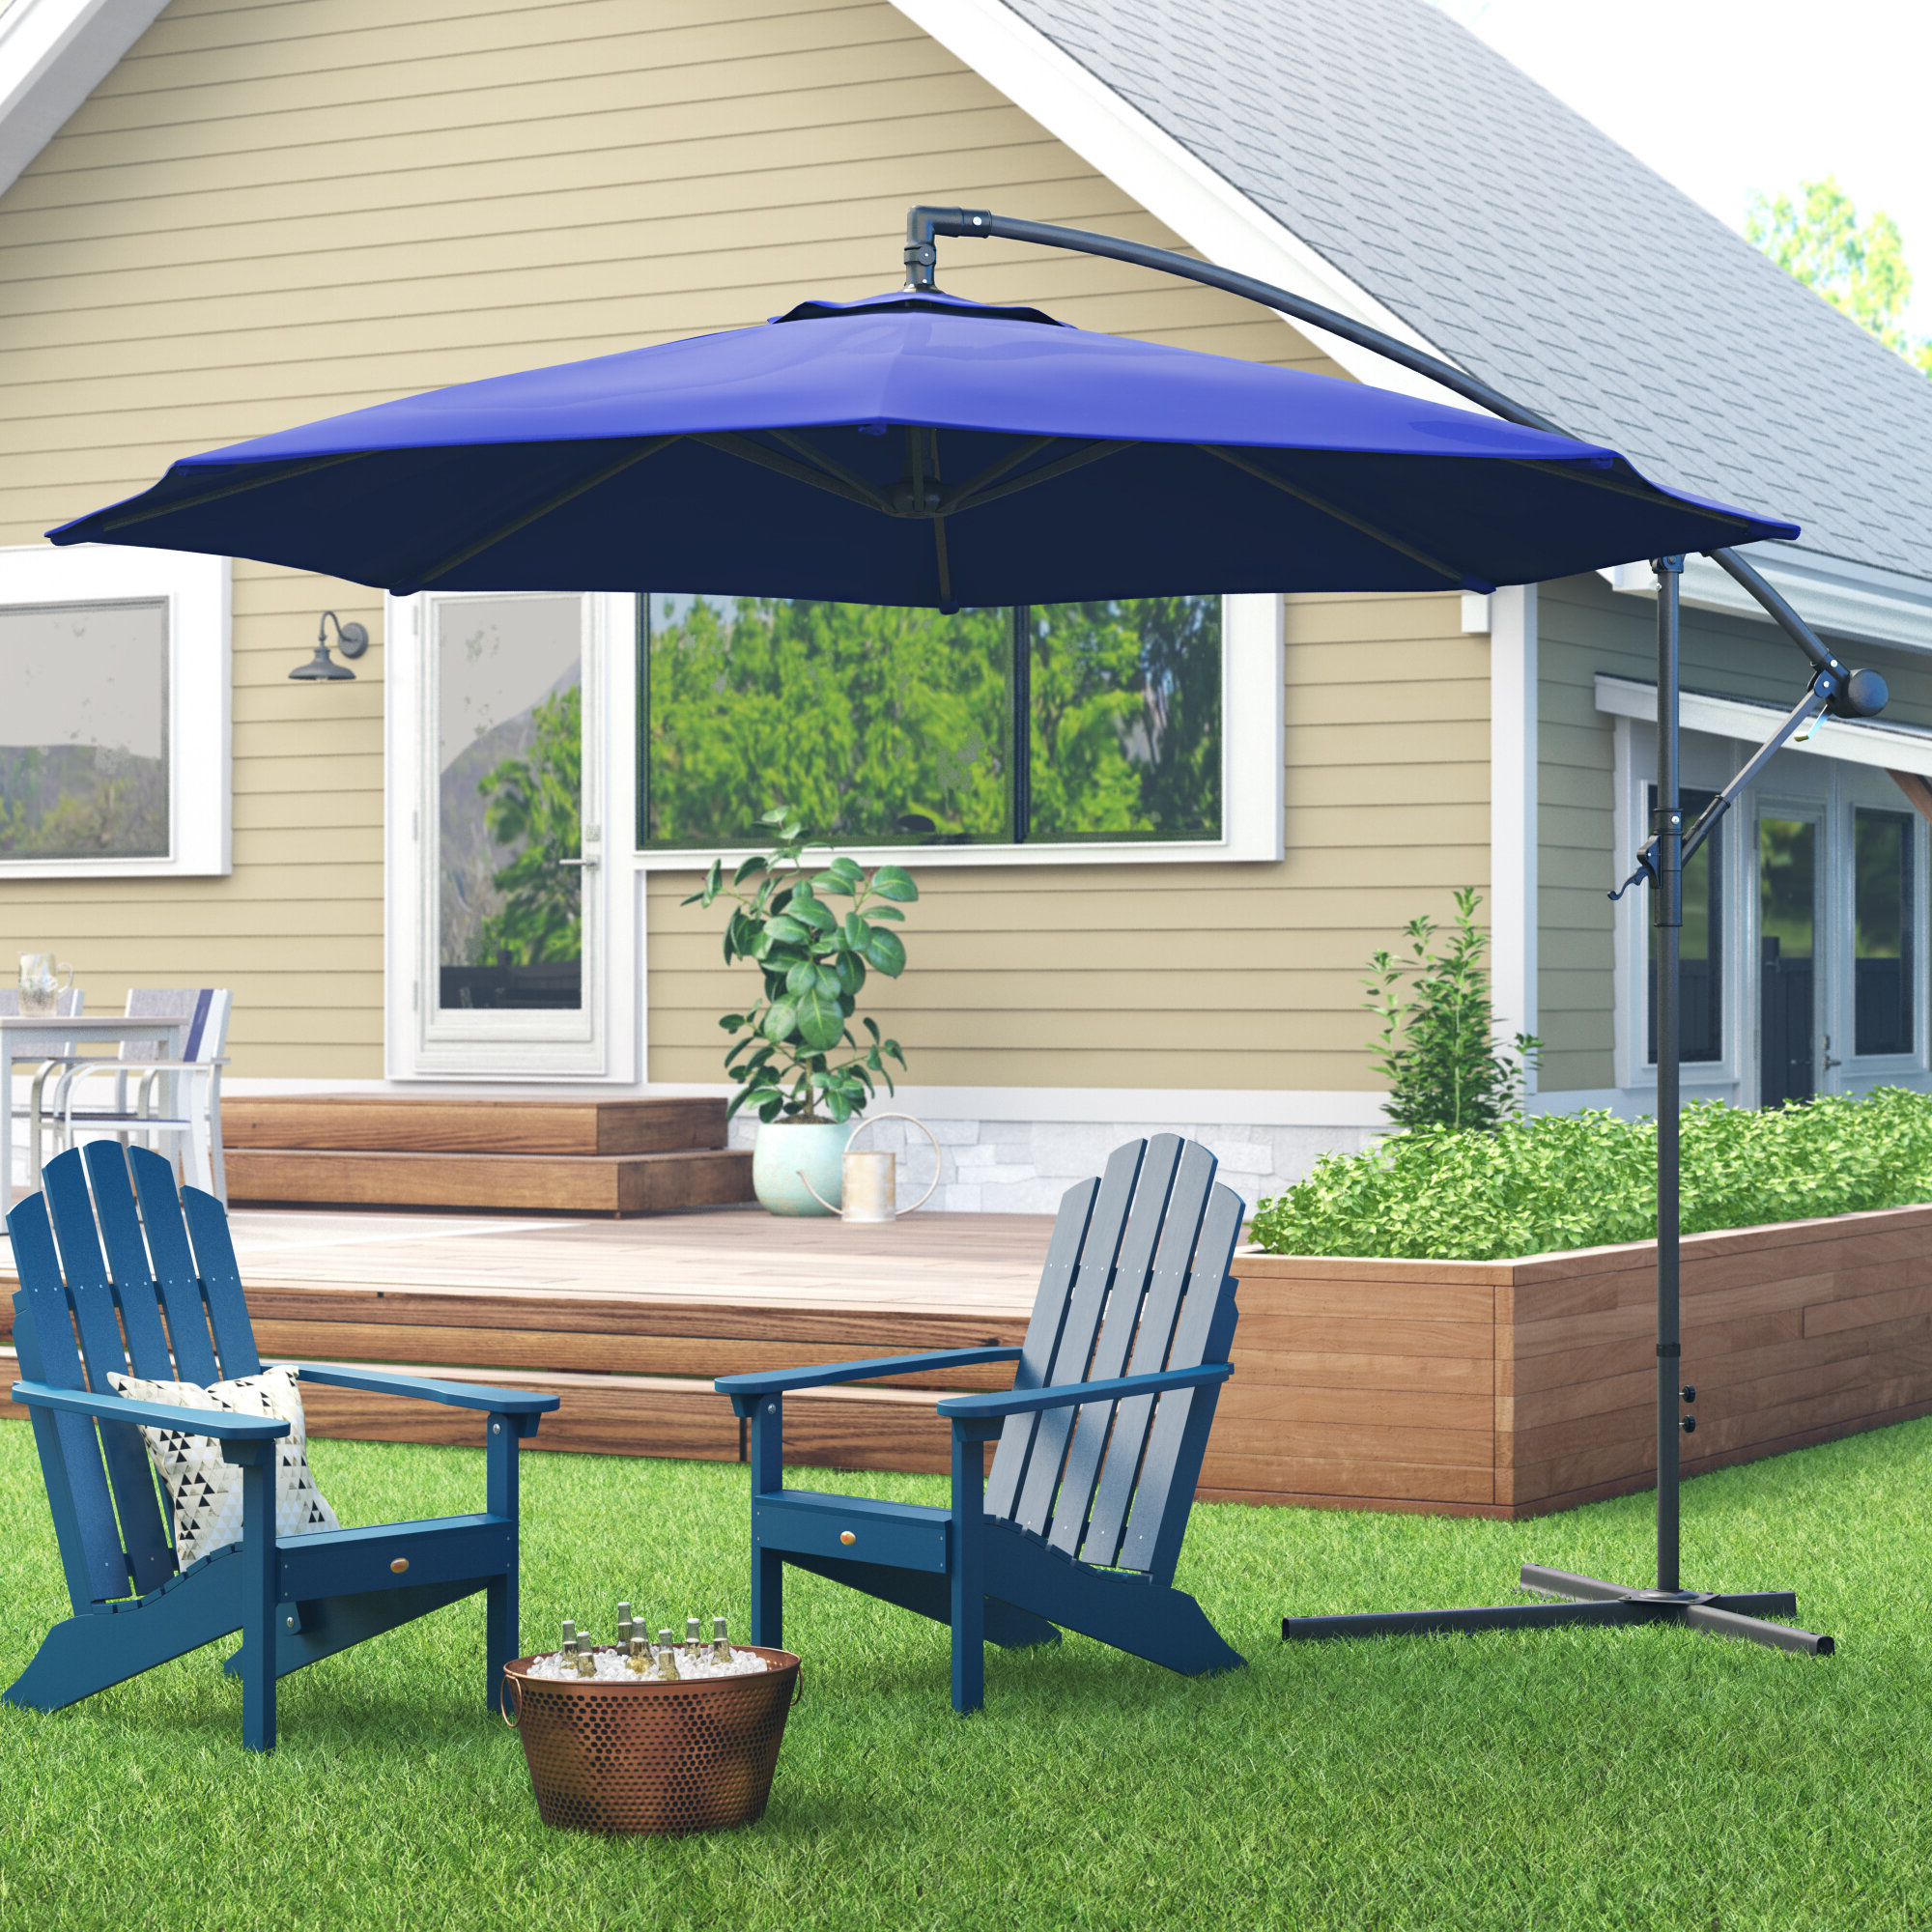 Most Popular Bostic Cantilever Umbrellas Within Trotman 10' Cantilever Umbrella (Gallery 10 of 20)